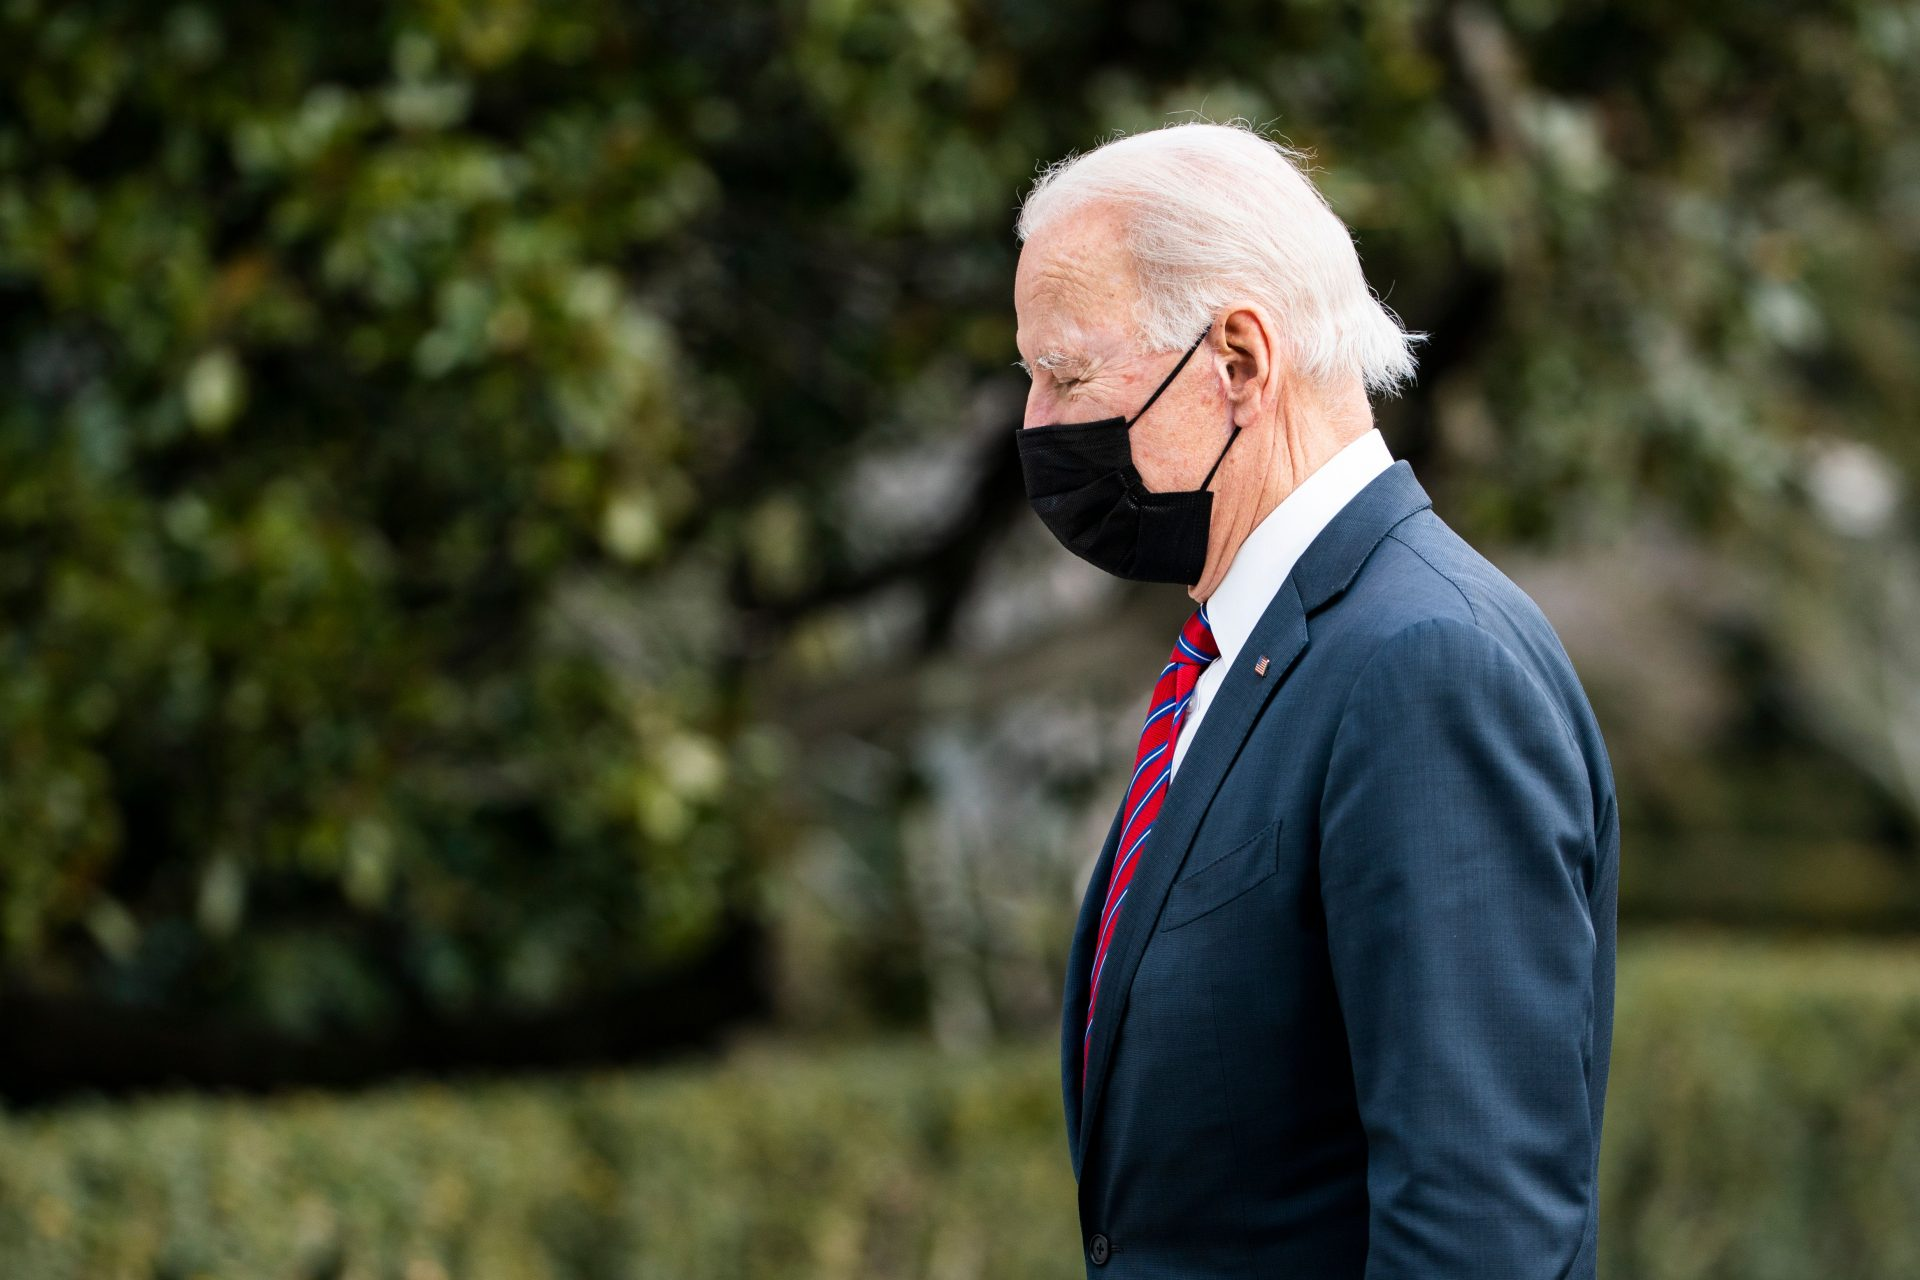 Mandatory Credit: Photo by JIM LO SCALZO/EPA-EFE/Shutterstock (11736789a)US President Joe Biden returns to the White House, in Washington, DC, USA, 29 January 2021, after a short visit with wounded veterans at Walter Reed Medical Center in Bethesda, Maryland.